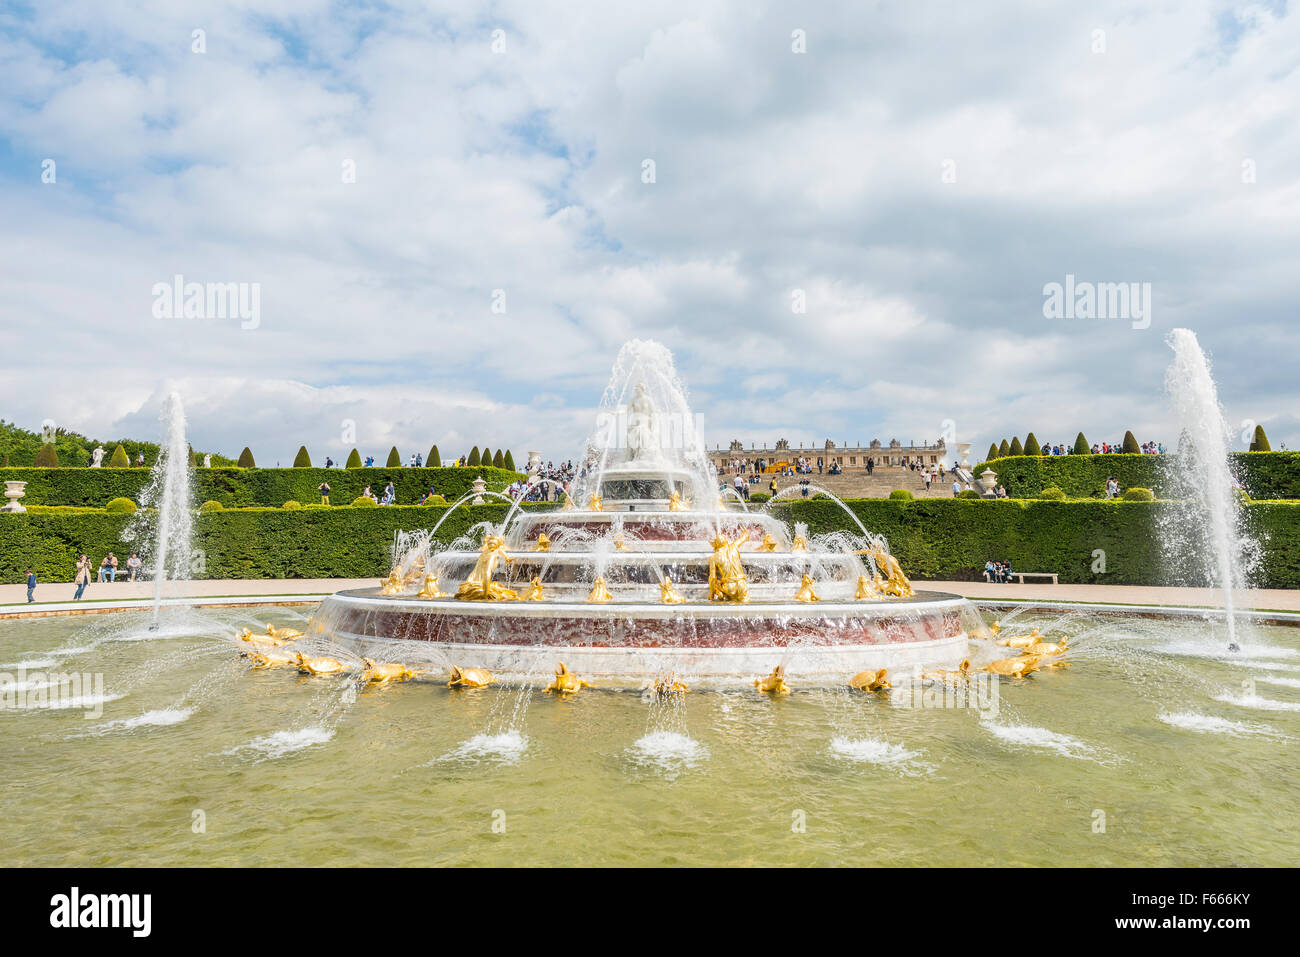 Latona Fountain in Gardens of Versailles, Palace of Versailles, UNESCO World Heritage Site, Yvelines, Region Ile - Stock Image